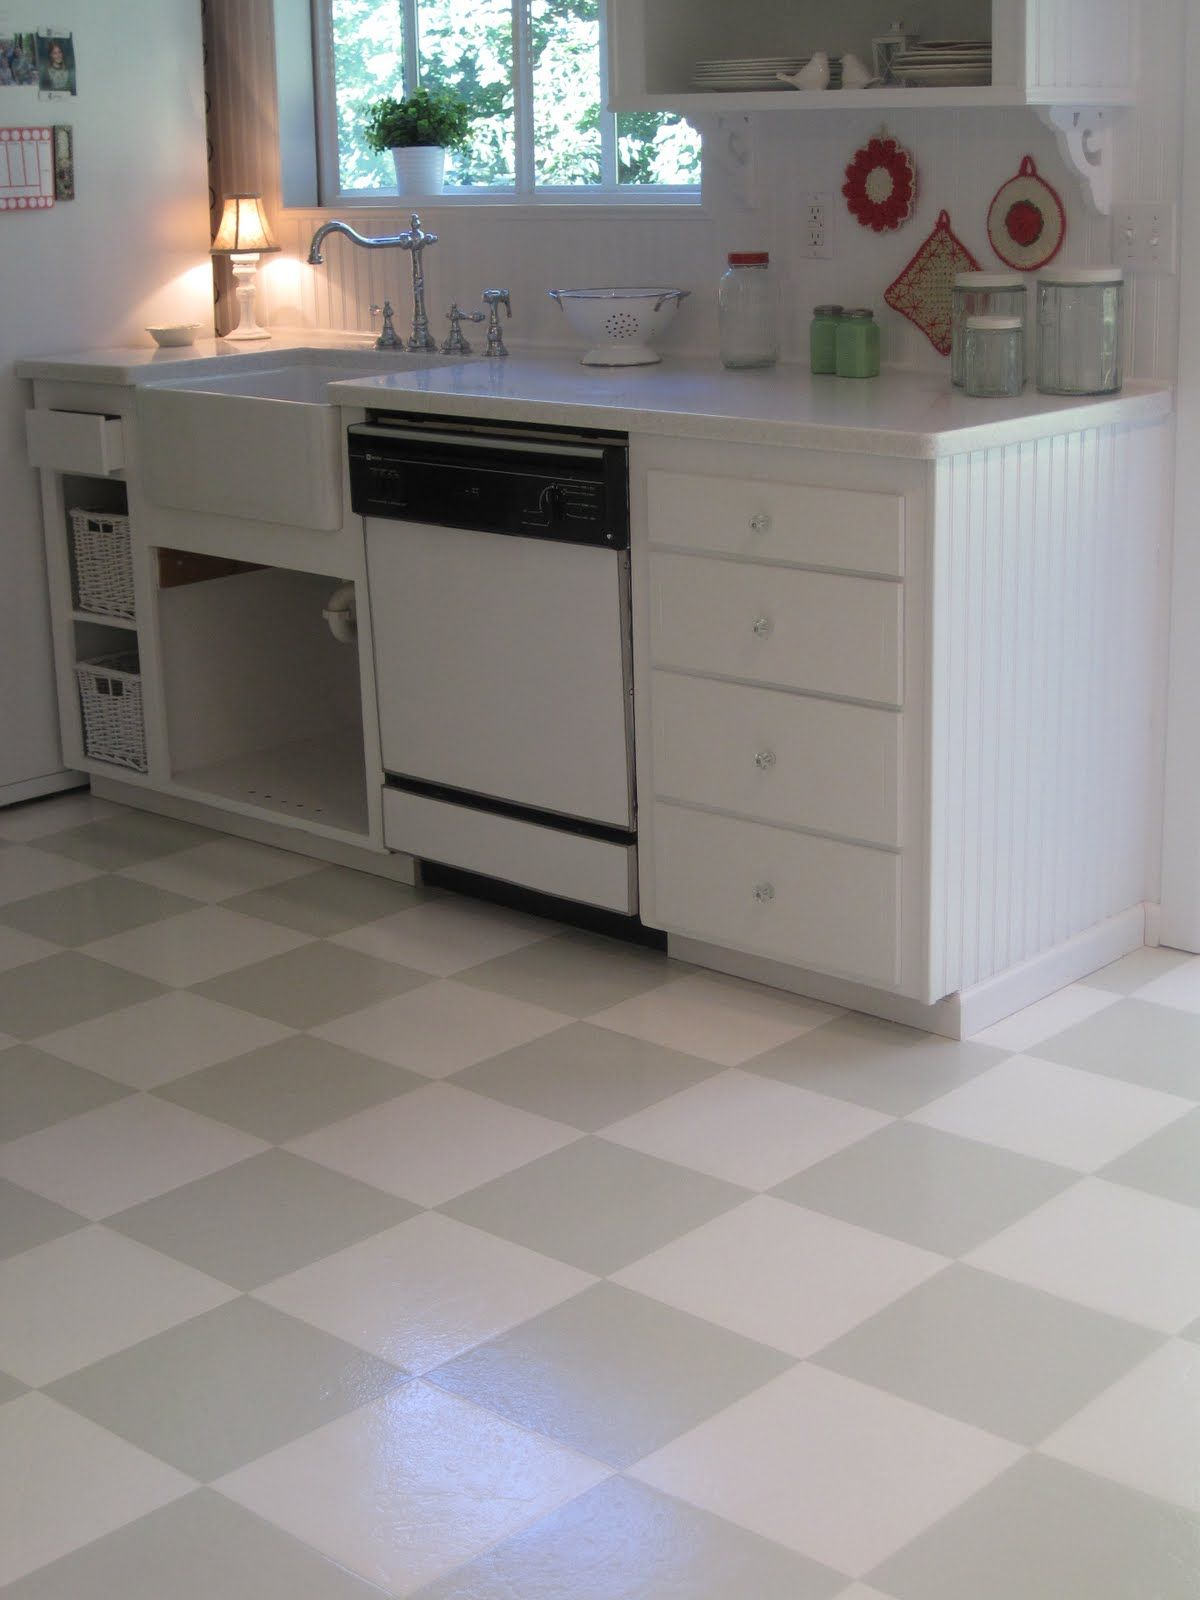 kitchen floor checkerboard Vinyl flooring kitchen